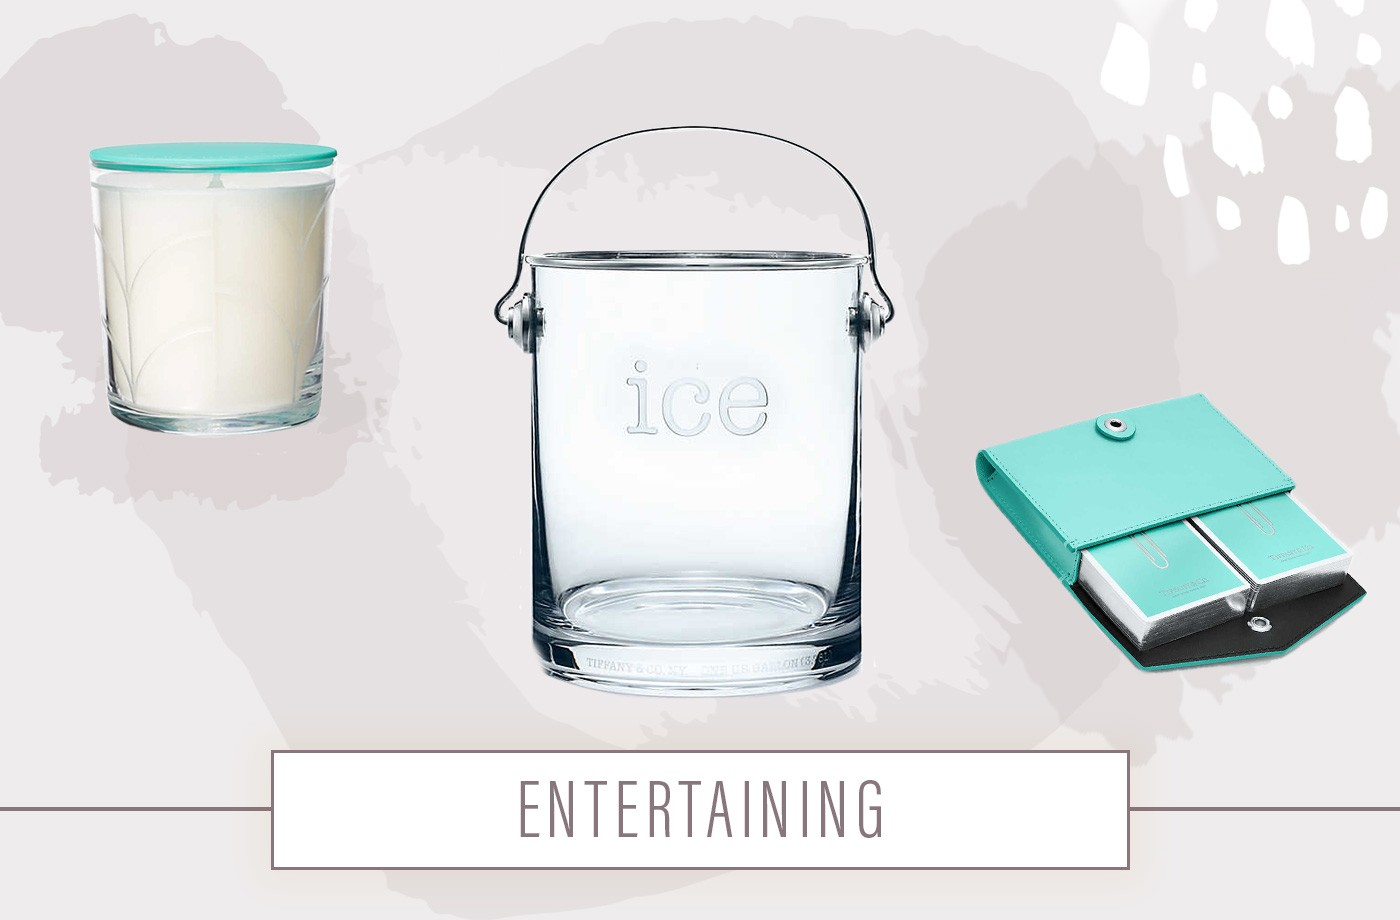 Entertaining gifts for graduates from Tiffany & Co